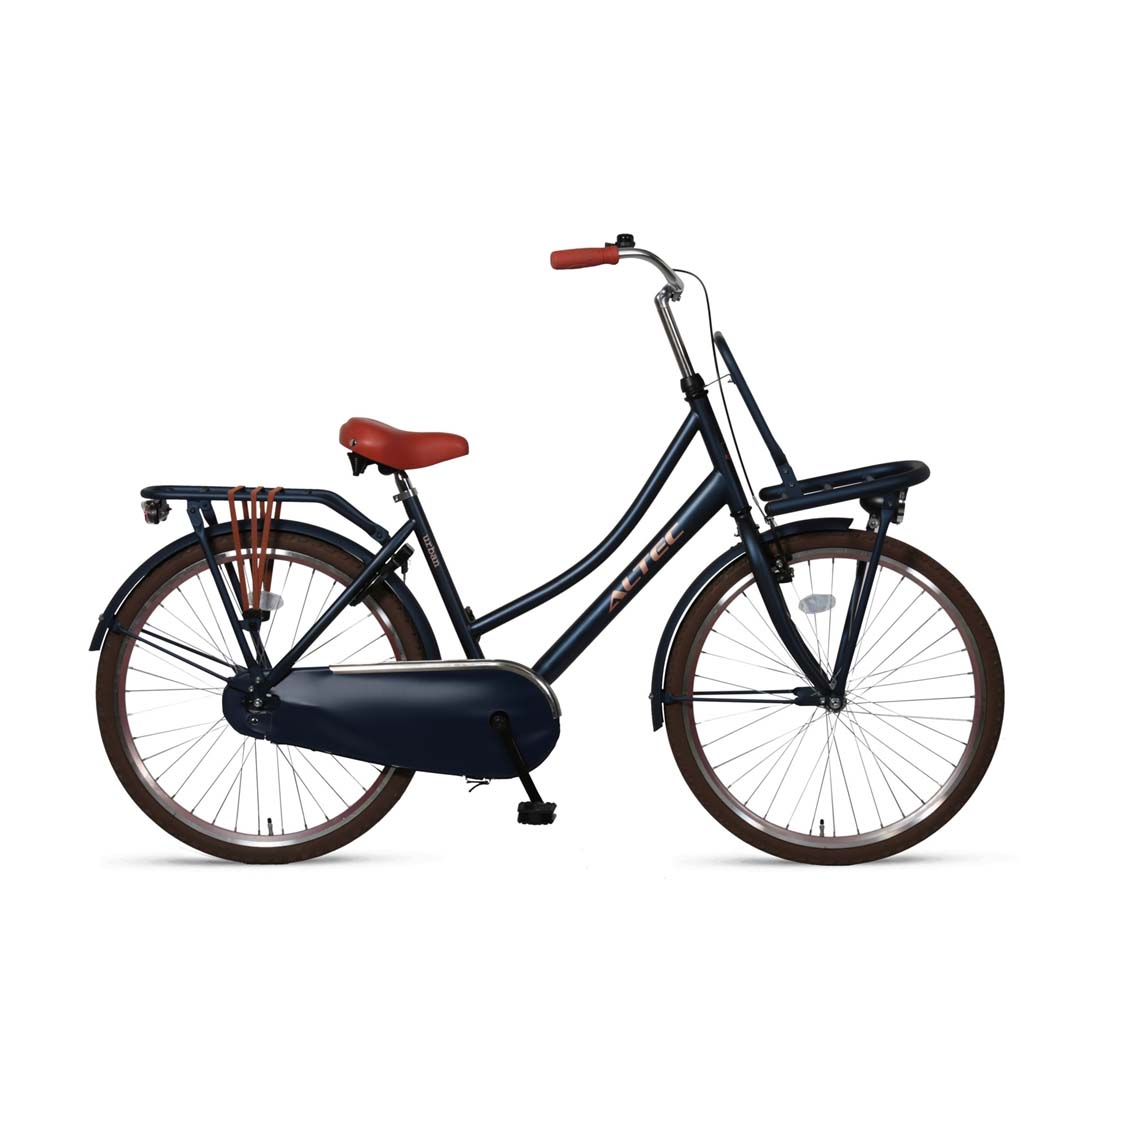 Altec-Urban-26inch-Transportfiets-Jeans-Blue-2019 copy